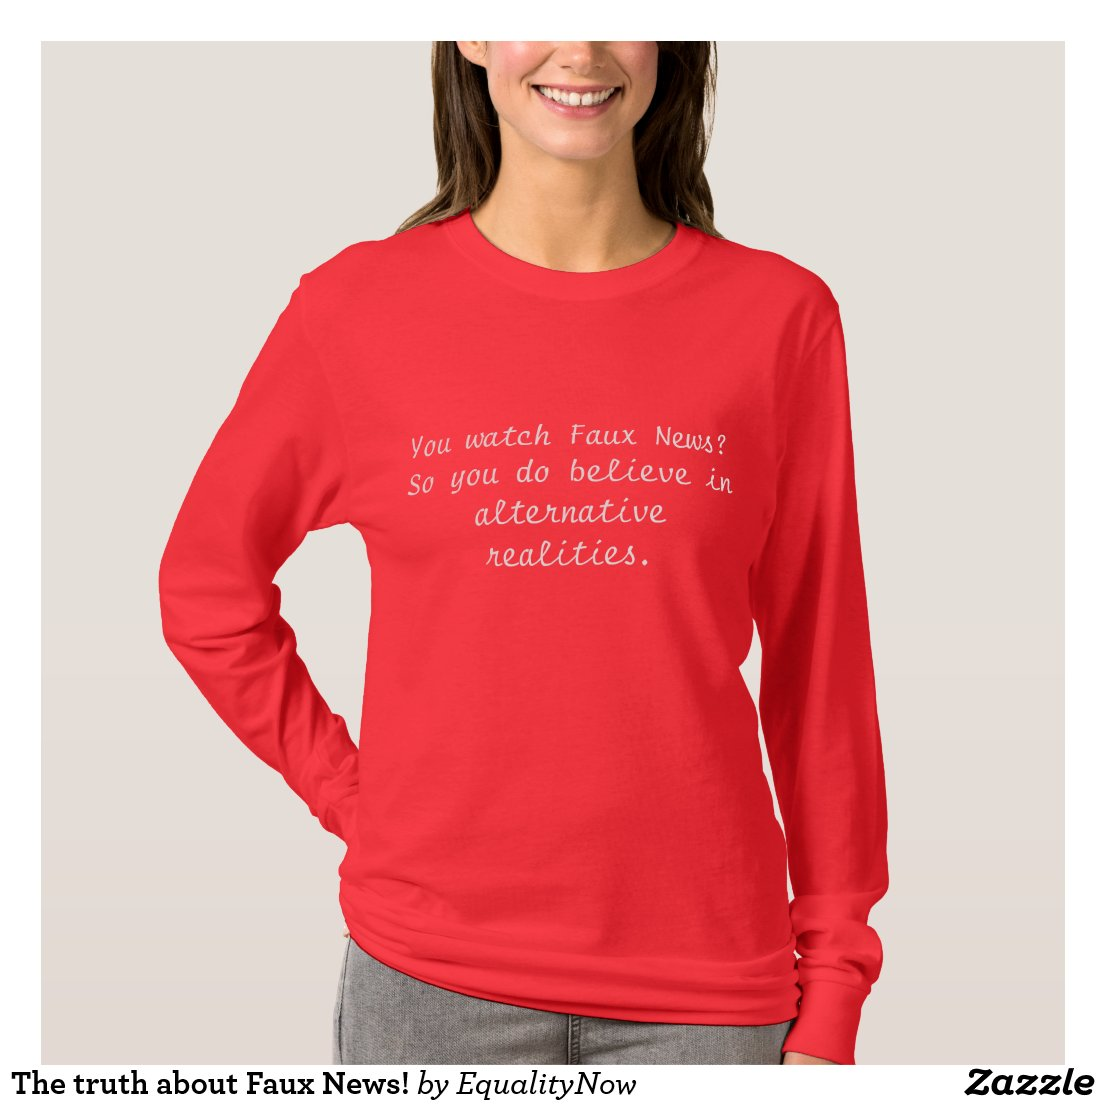 The Truth About Faux News! T-Shirt